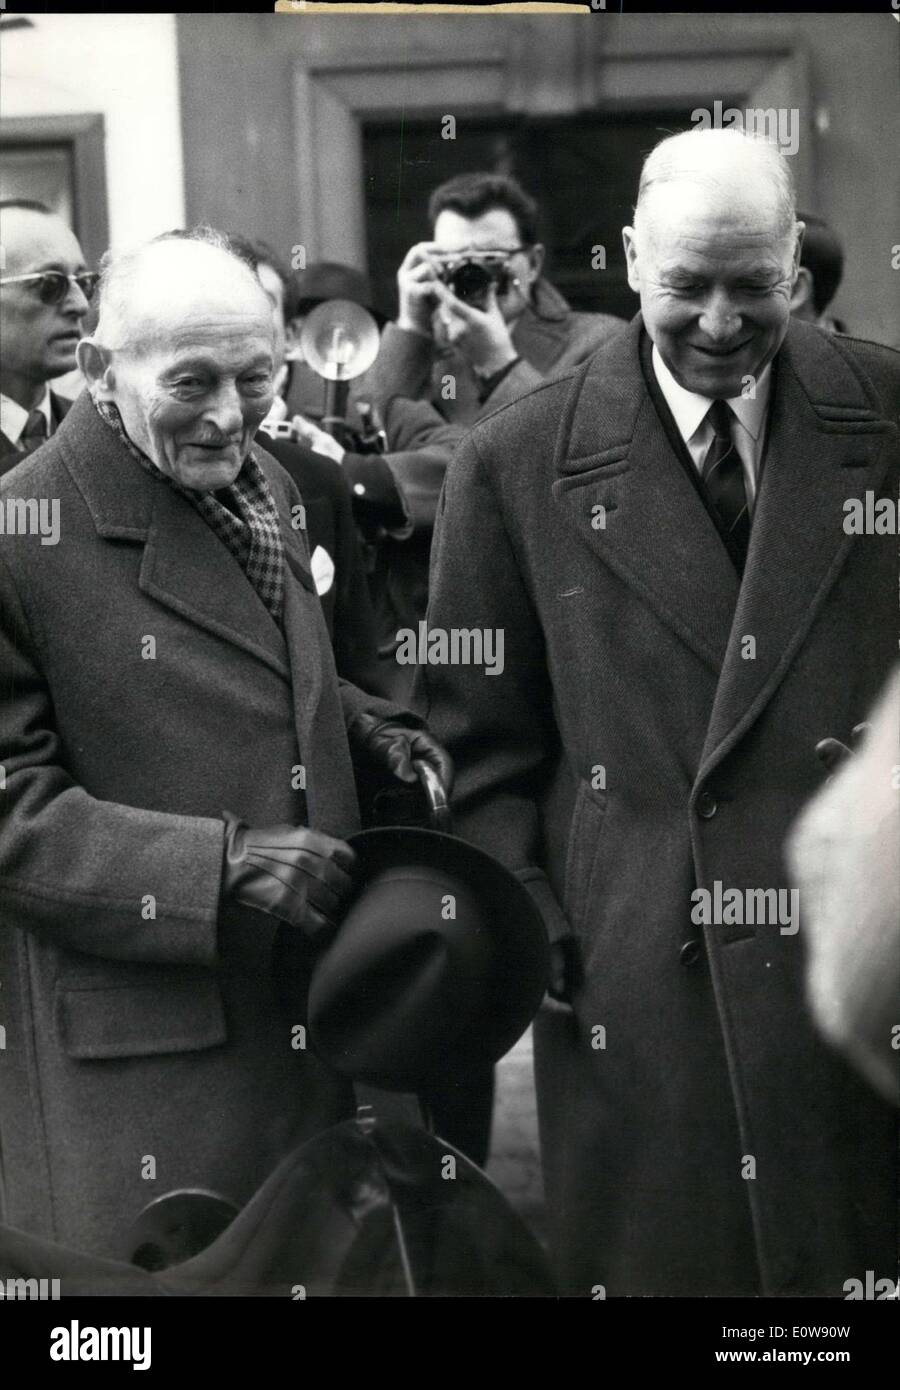 Feb. 02, 1962 - Funeral services for Mrs. Philippe Petain were held at Saint-Pierre-du-Gros-Caillou Church this morning. General Weygand and Marshall Juin exit the church with smiles on account of the sympathetic crowd. - Stock Image